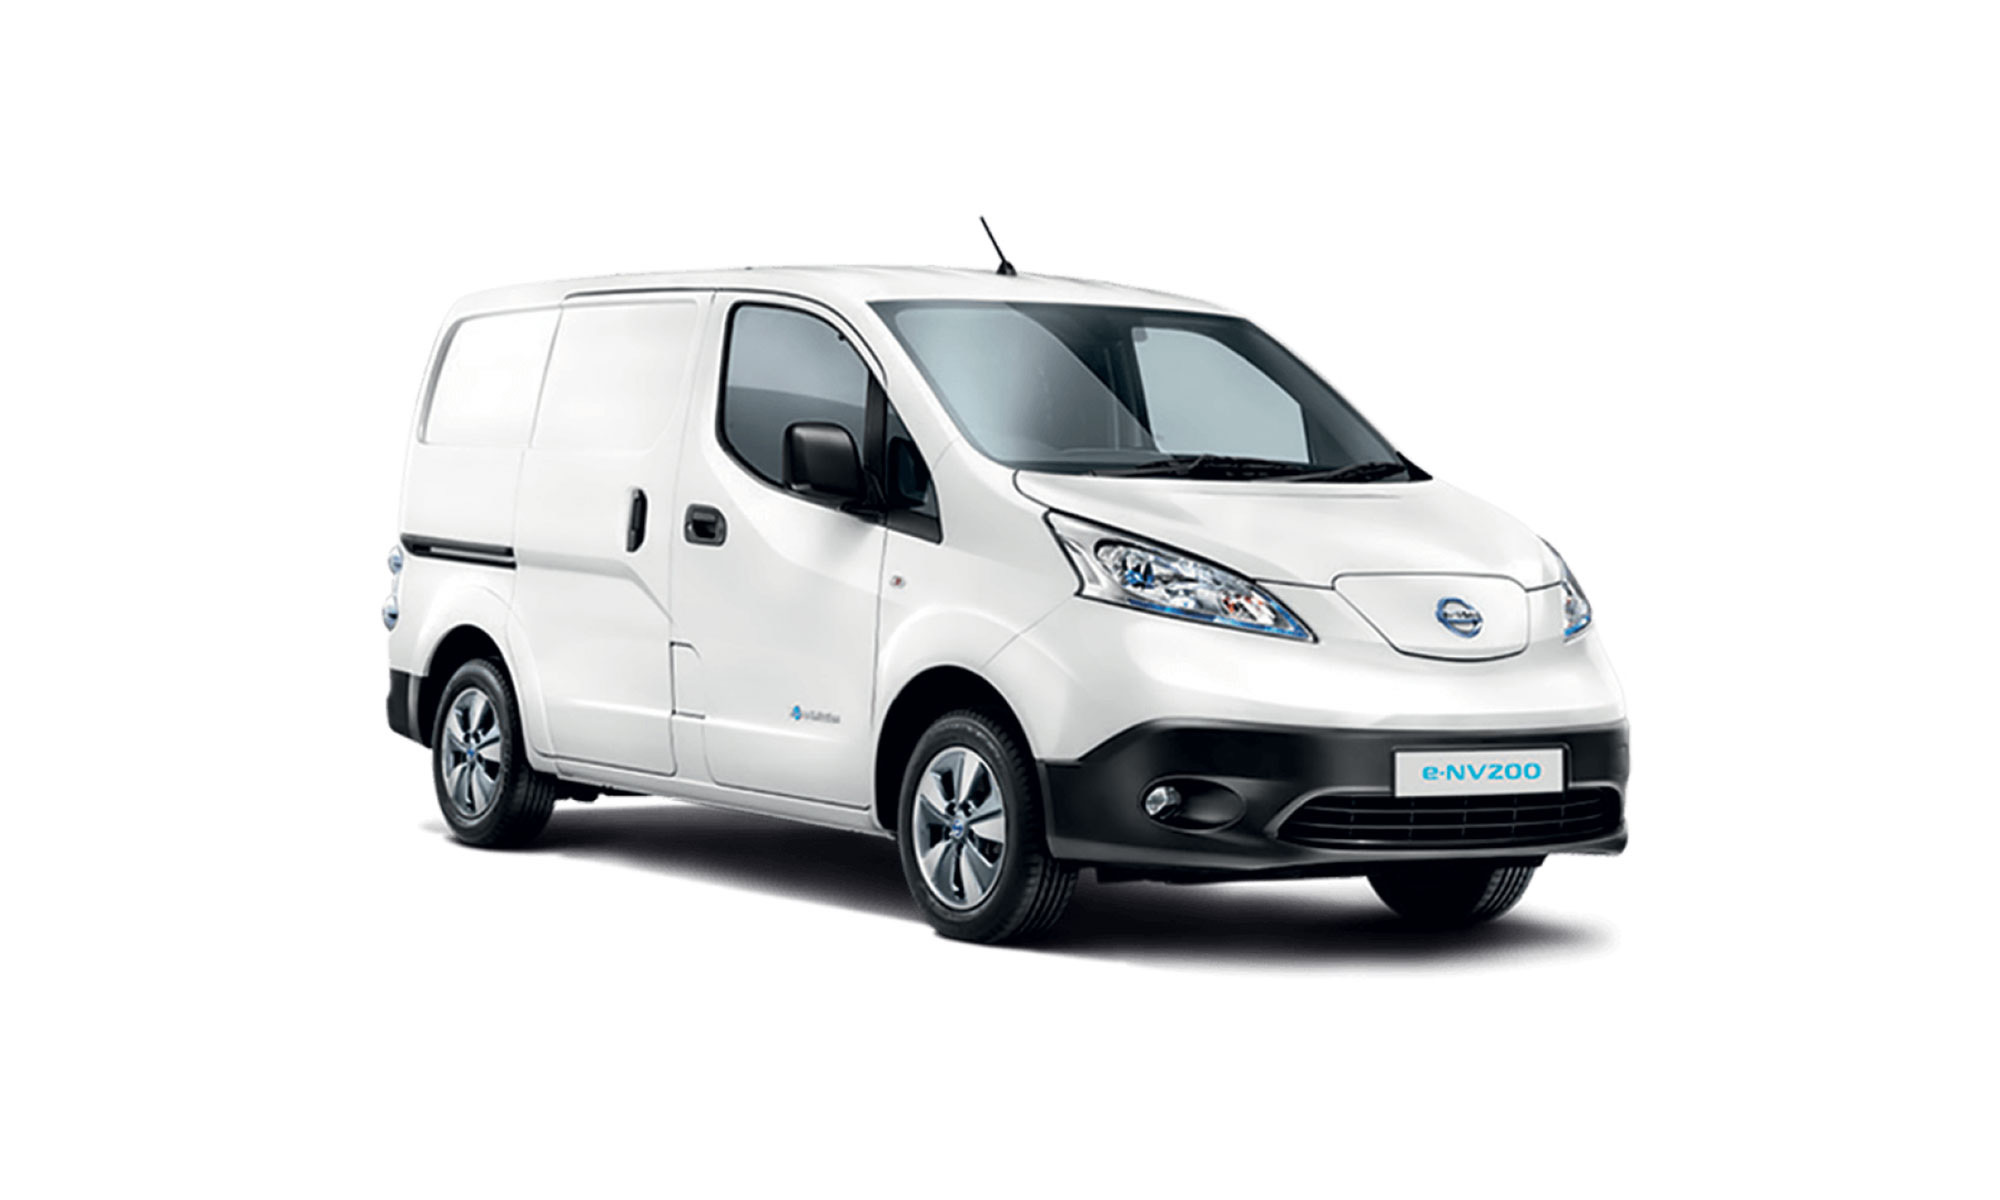 E Nv200 White Background